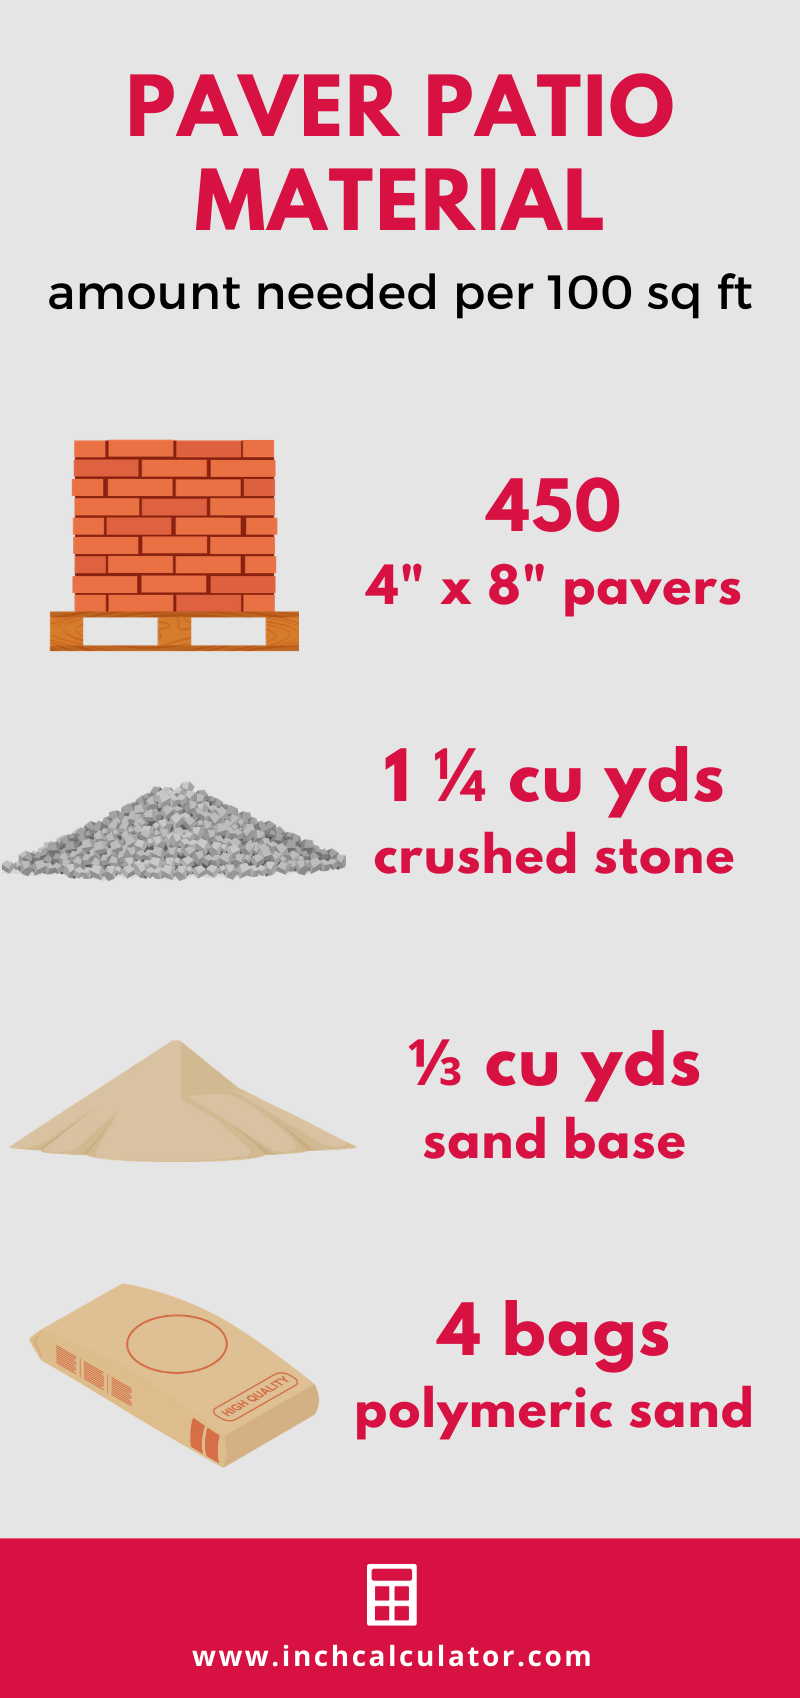 Infographic showing the number of pavers, yards of sand and gravel, and bags of polymeric sand are needed per 100 sq ft of paver patio